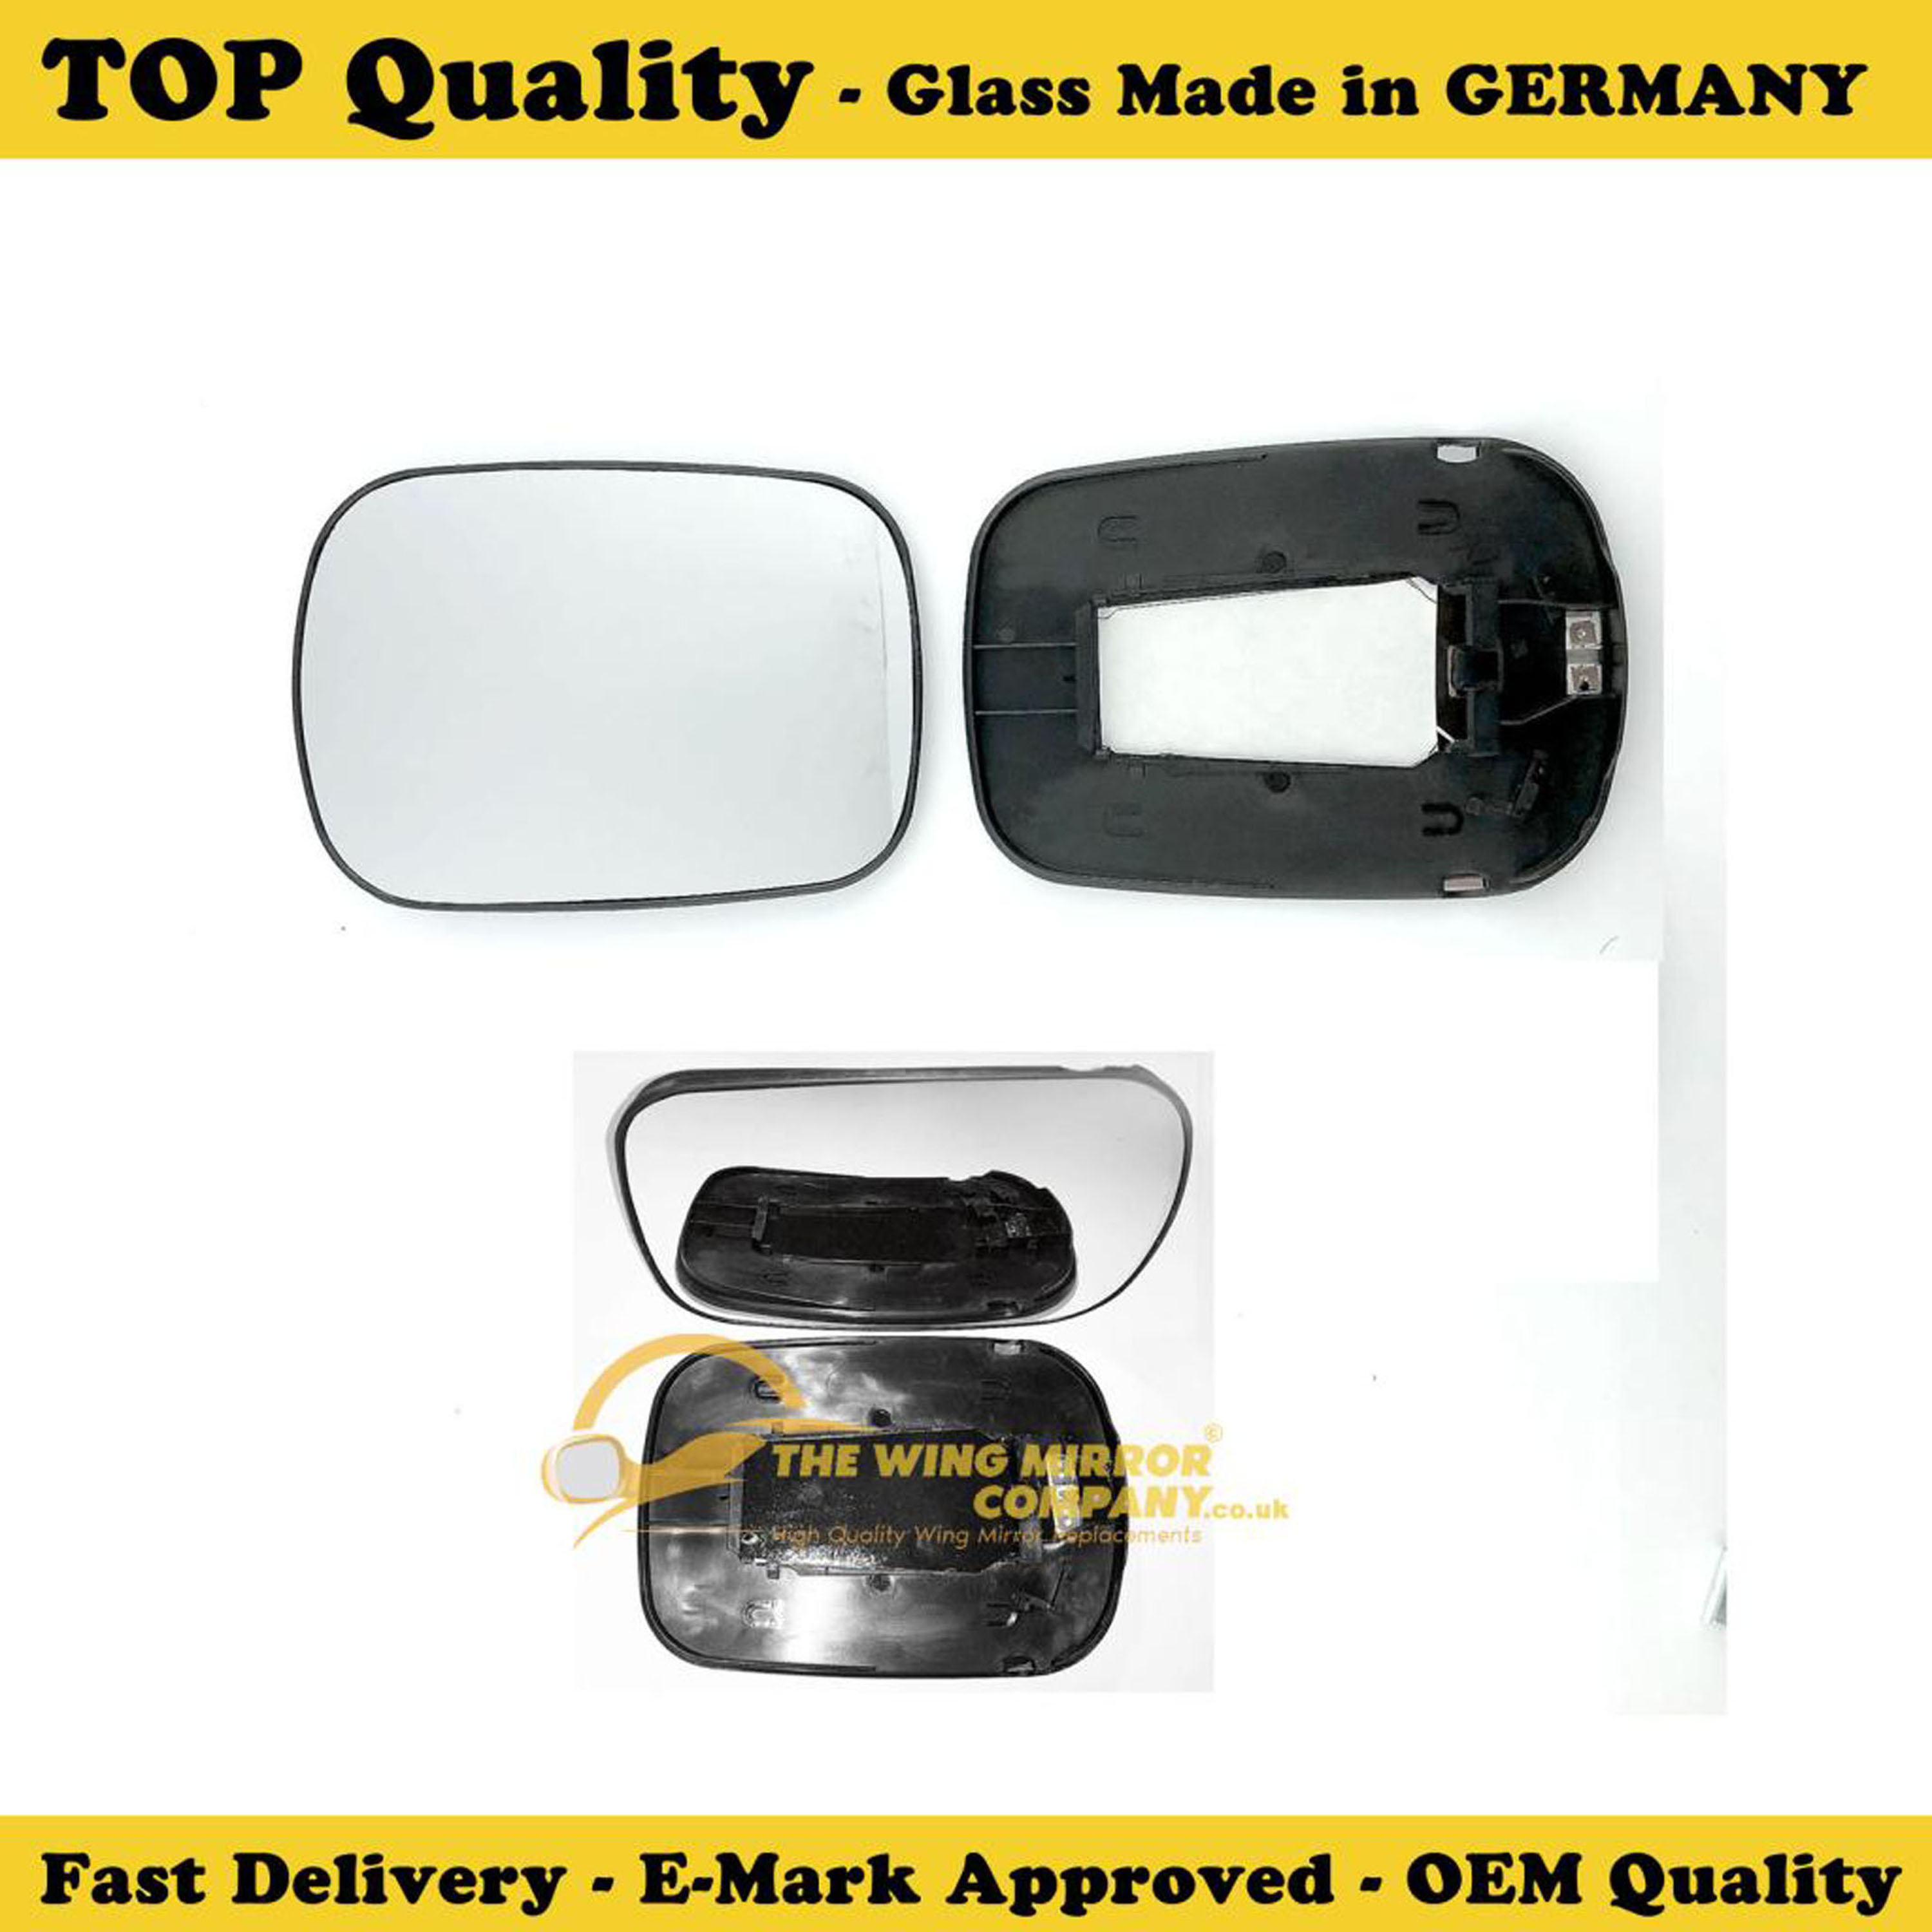 Volvo Xc70 Mirror: Low Price And High Quality Guarantee On Volvo Xc70 Driver